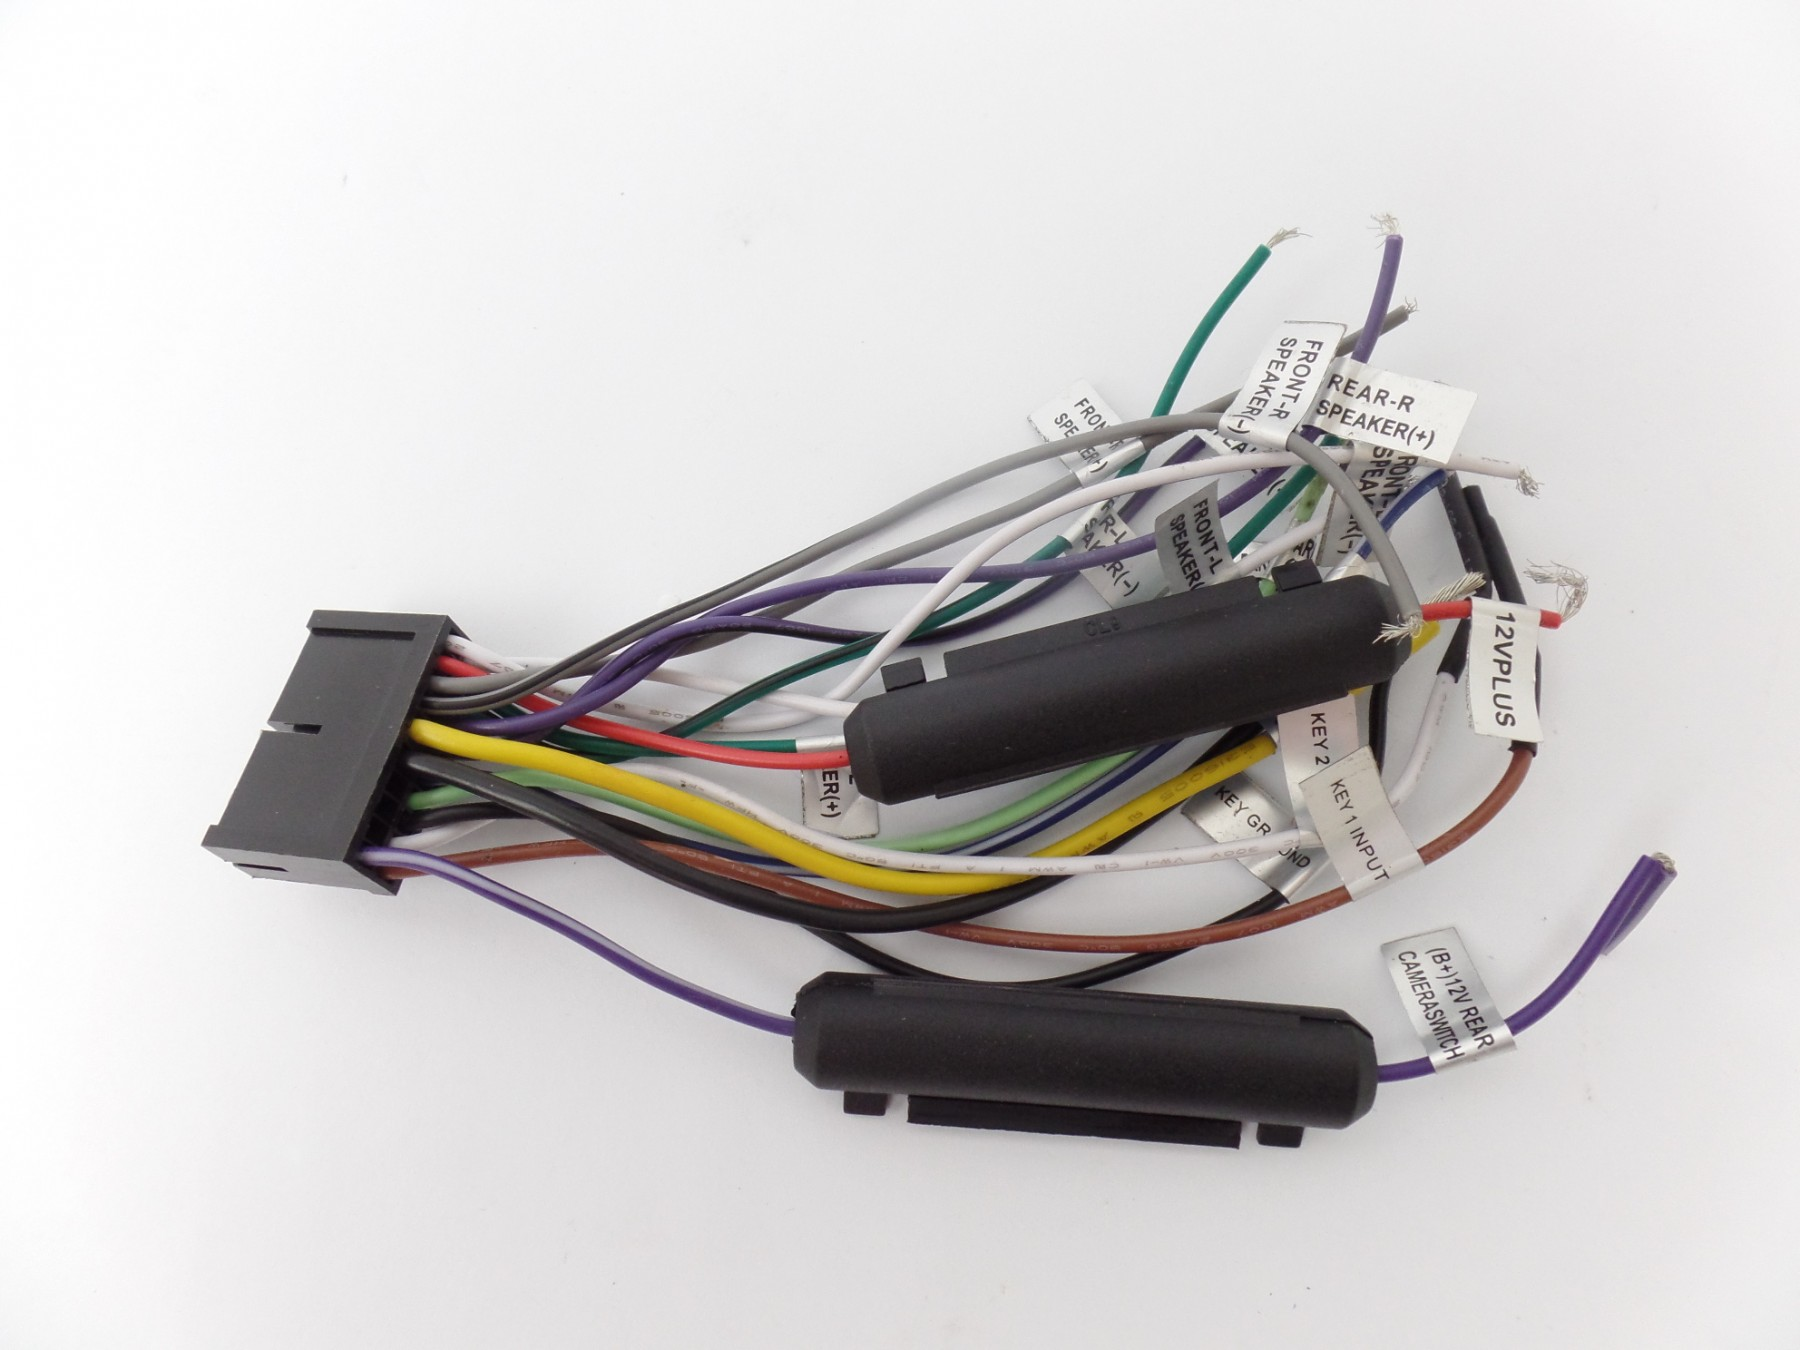 Wiring Harness Video Audio Input Output Wires for Boss BV9976B Car ReceiverAVE Electronics